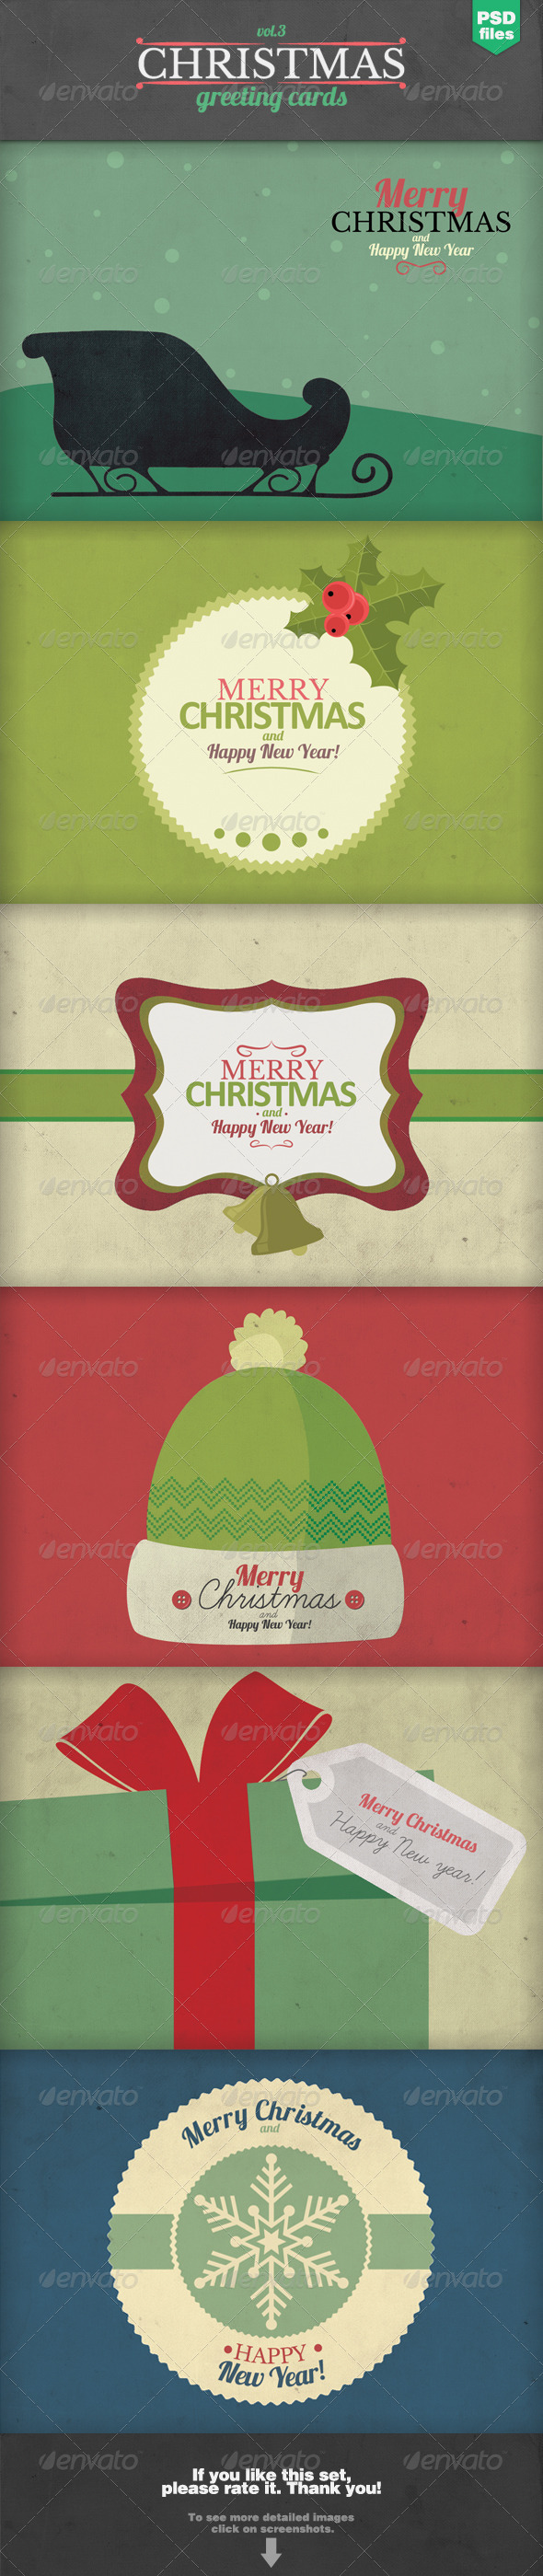 Christmas Greeting Cards Set 3 - Backgrounds Graphics